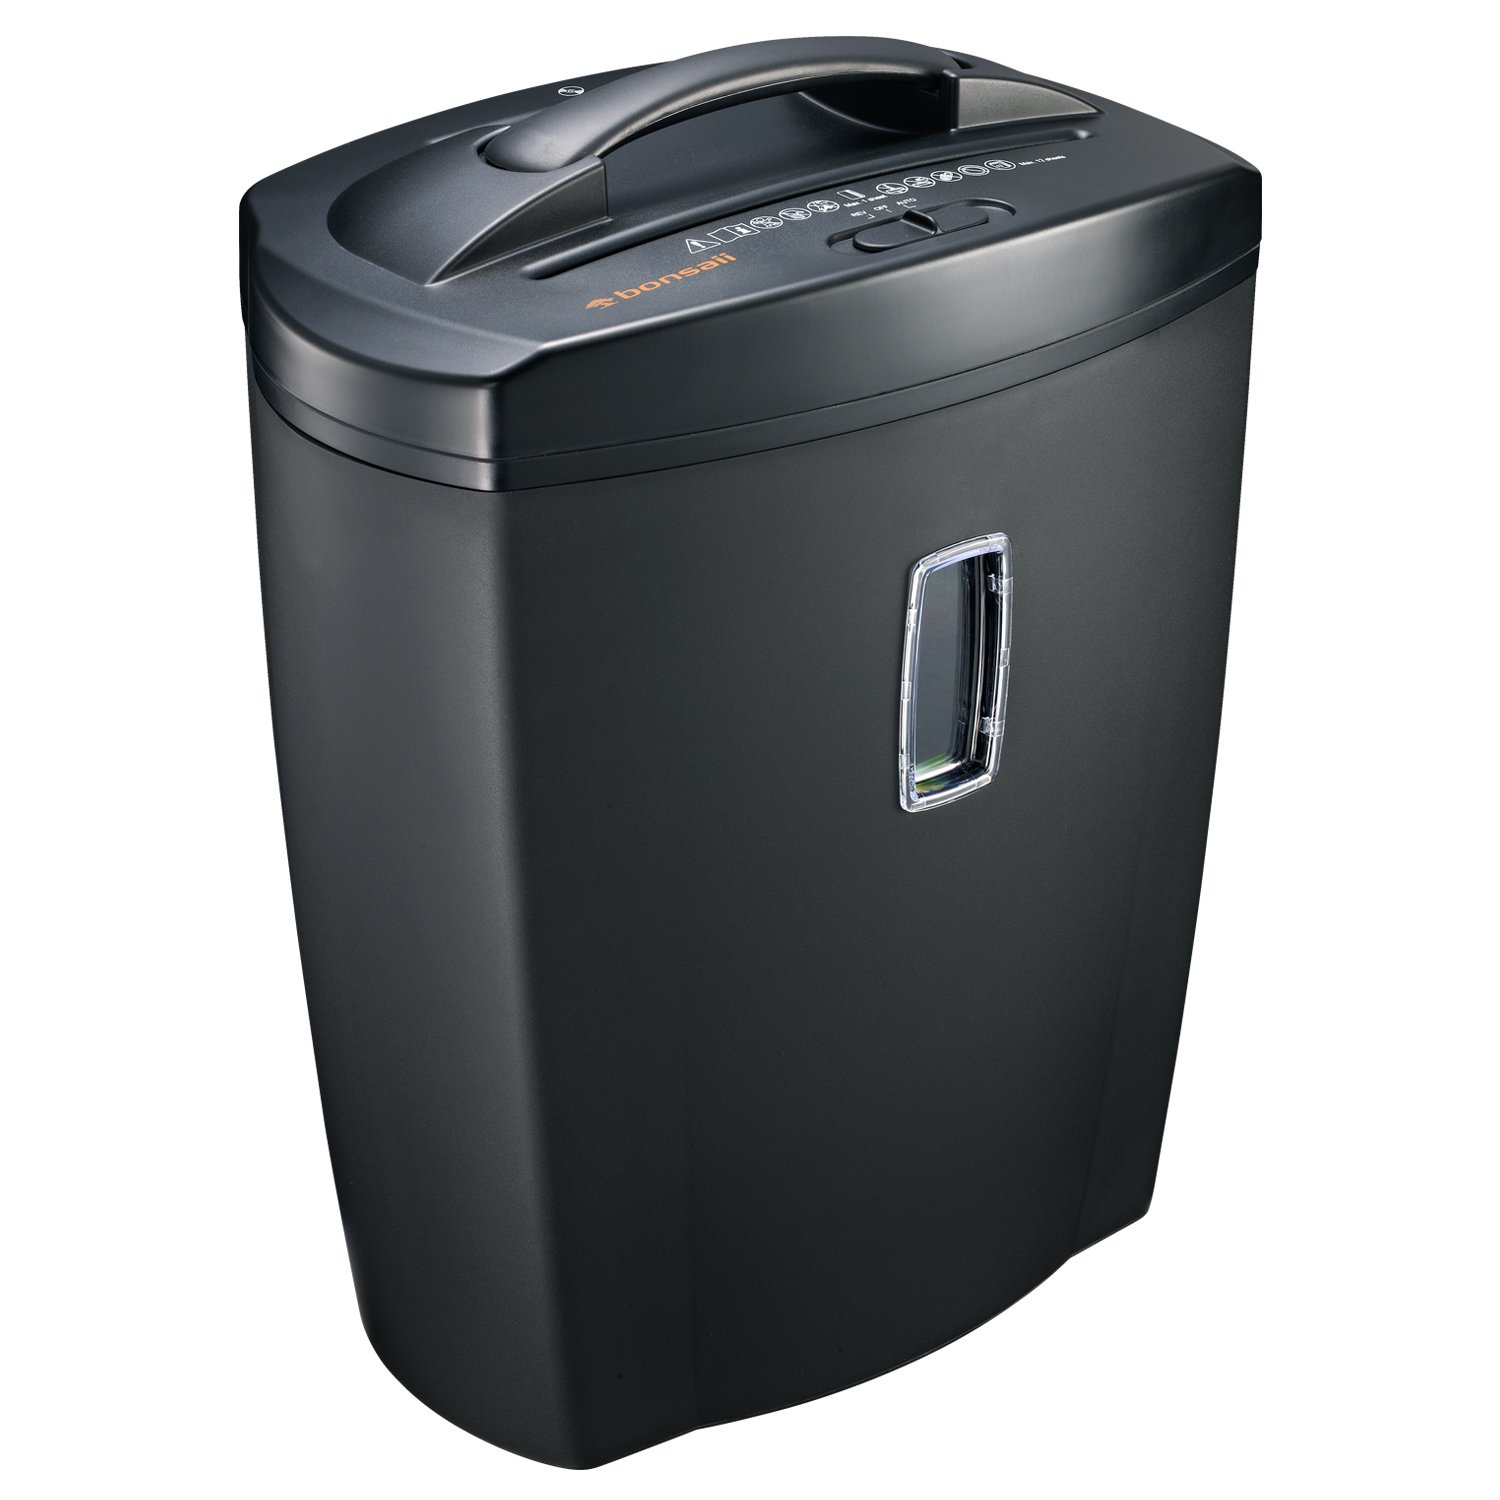 best micro cut paper shredder for home 2019 our top picks and buyer 39 s guide industry journal. Black Bedroom Furniture Sets. Home Design Ideas